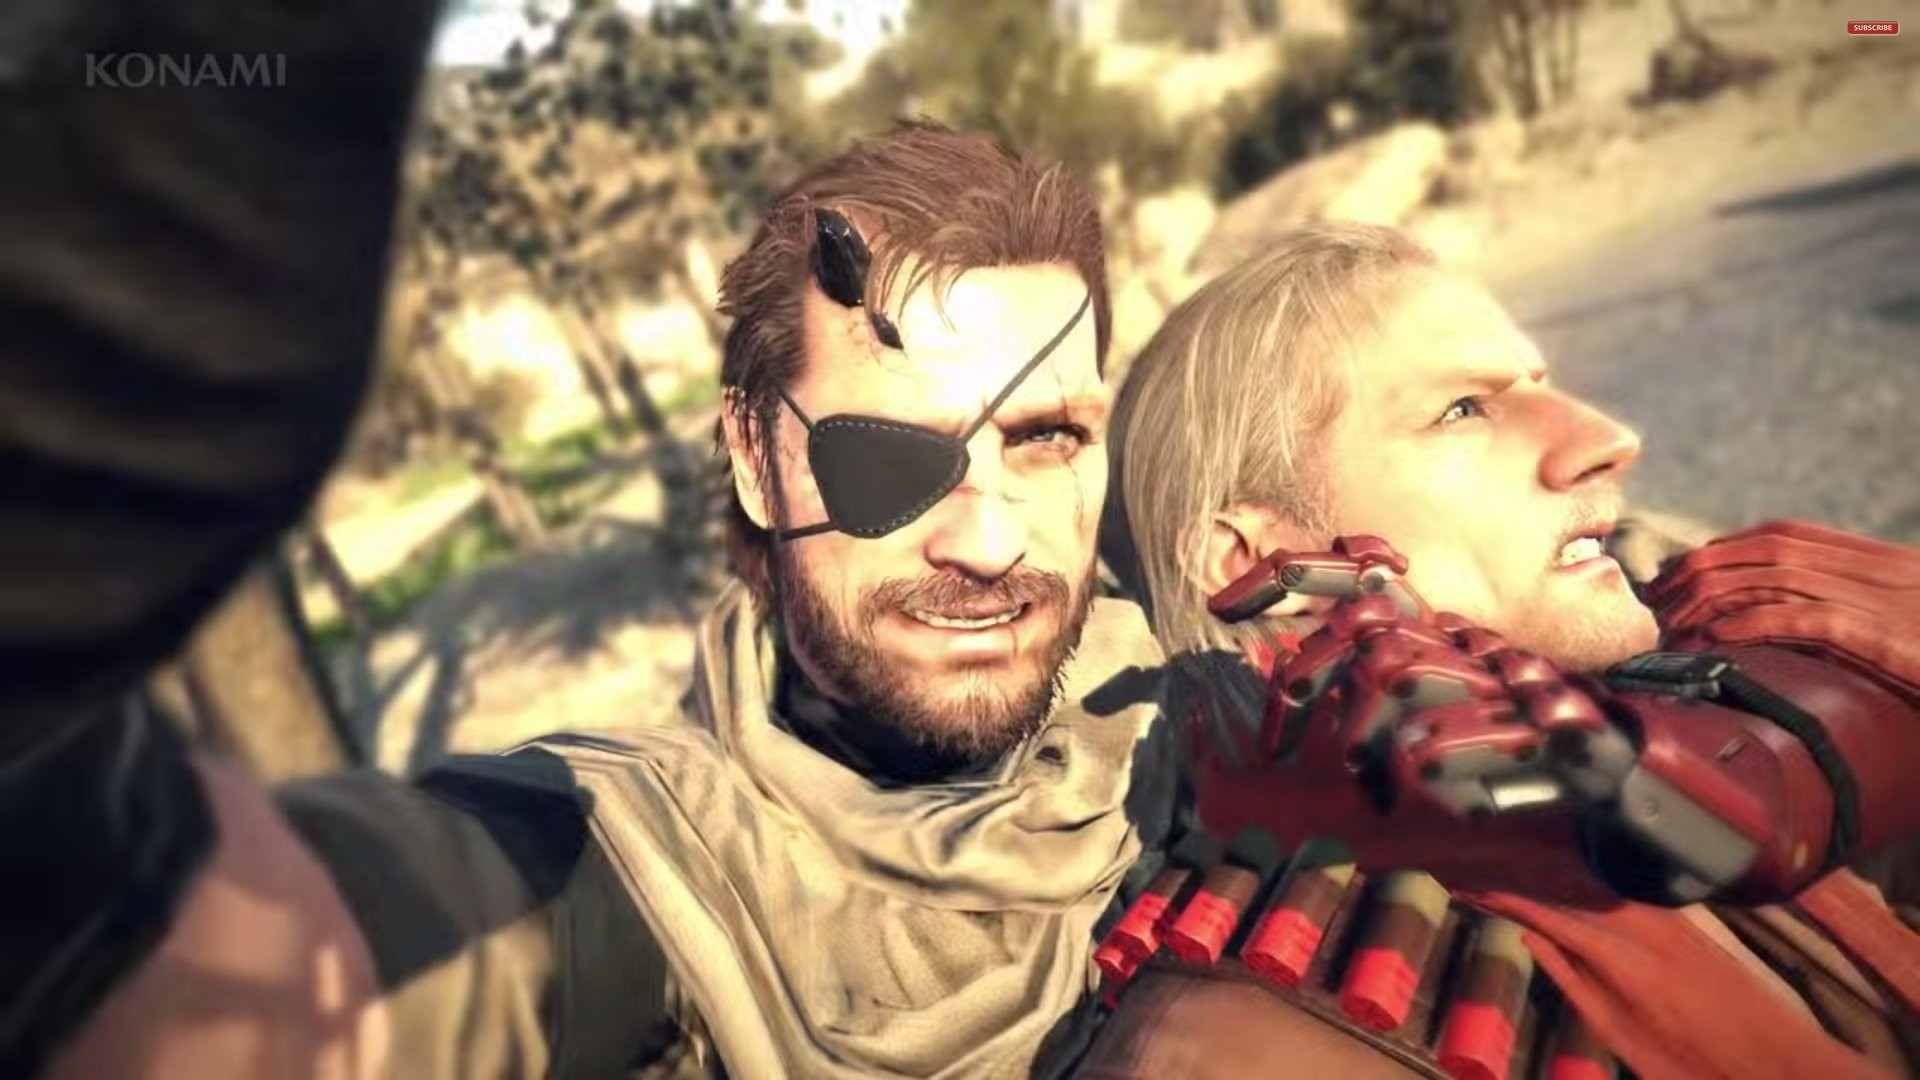 … metal gear solid phantom pain shooter stealth action military …